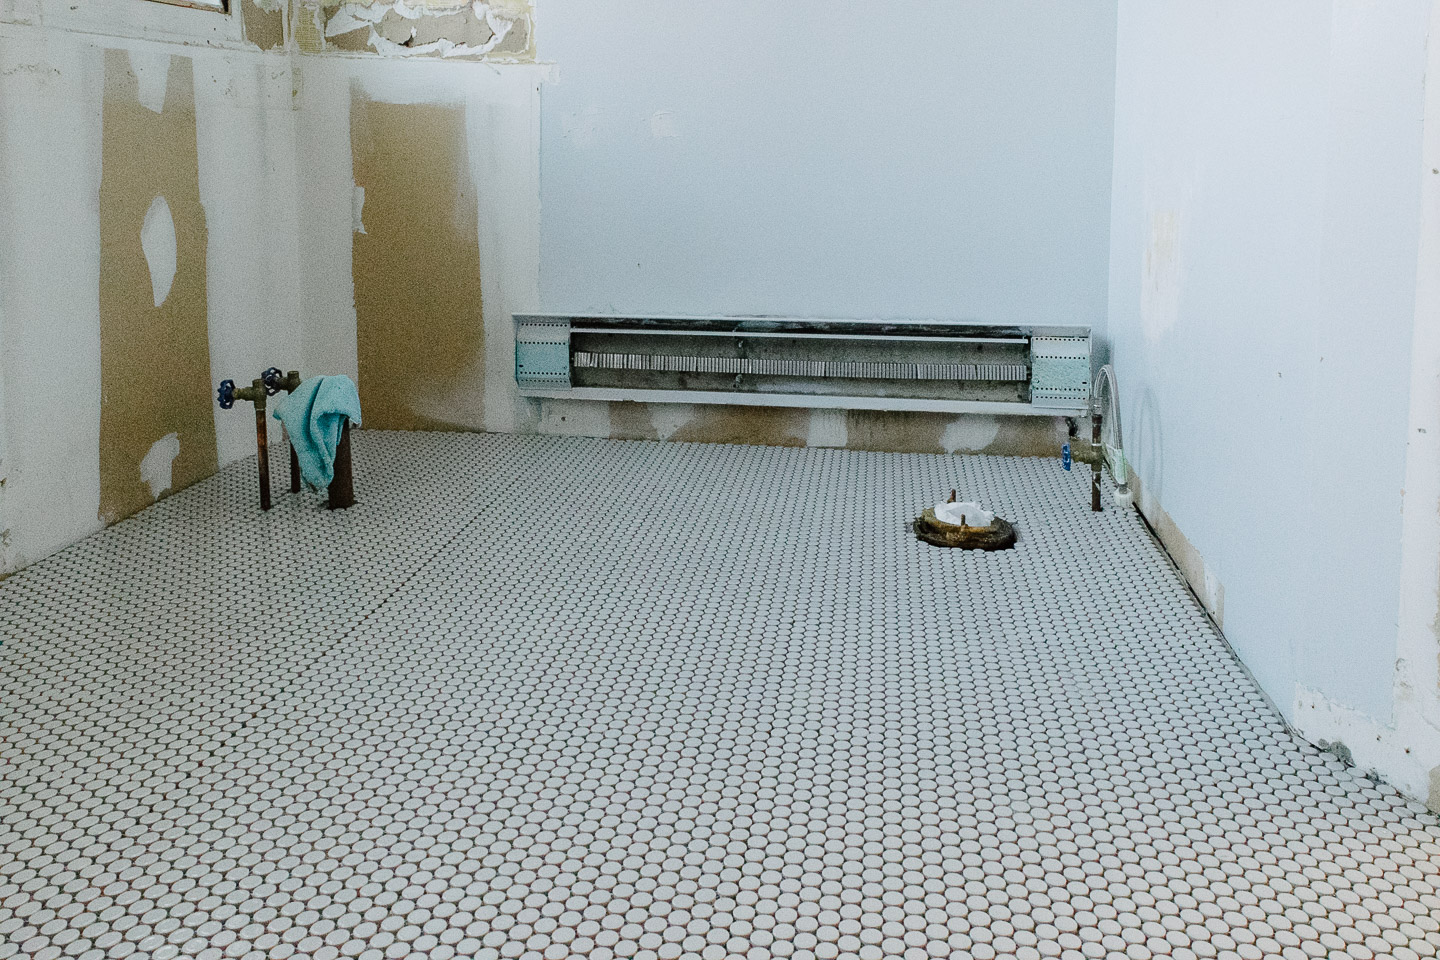 Why-were-simplifying-everything-with-bathroom-tile-and-life-ORC-Week-3-1107-1.jpg